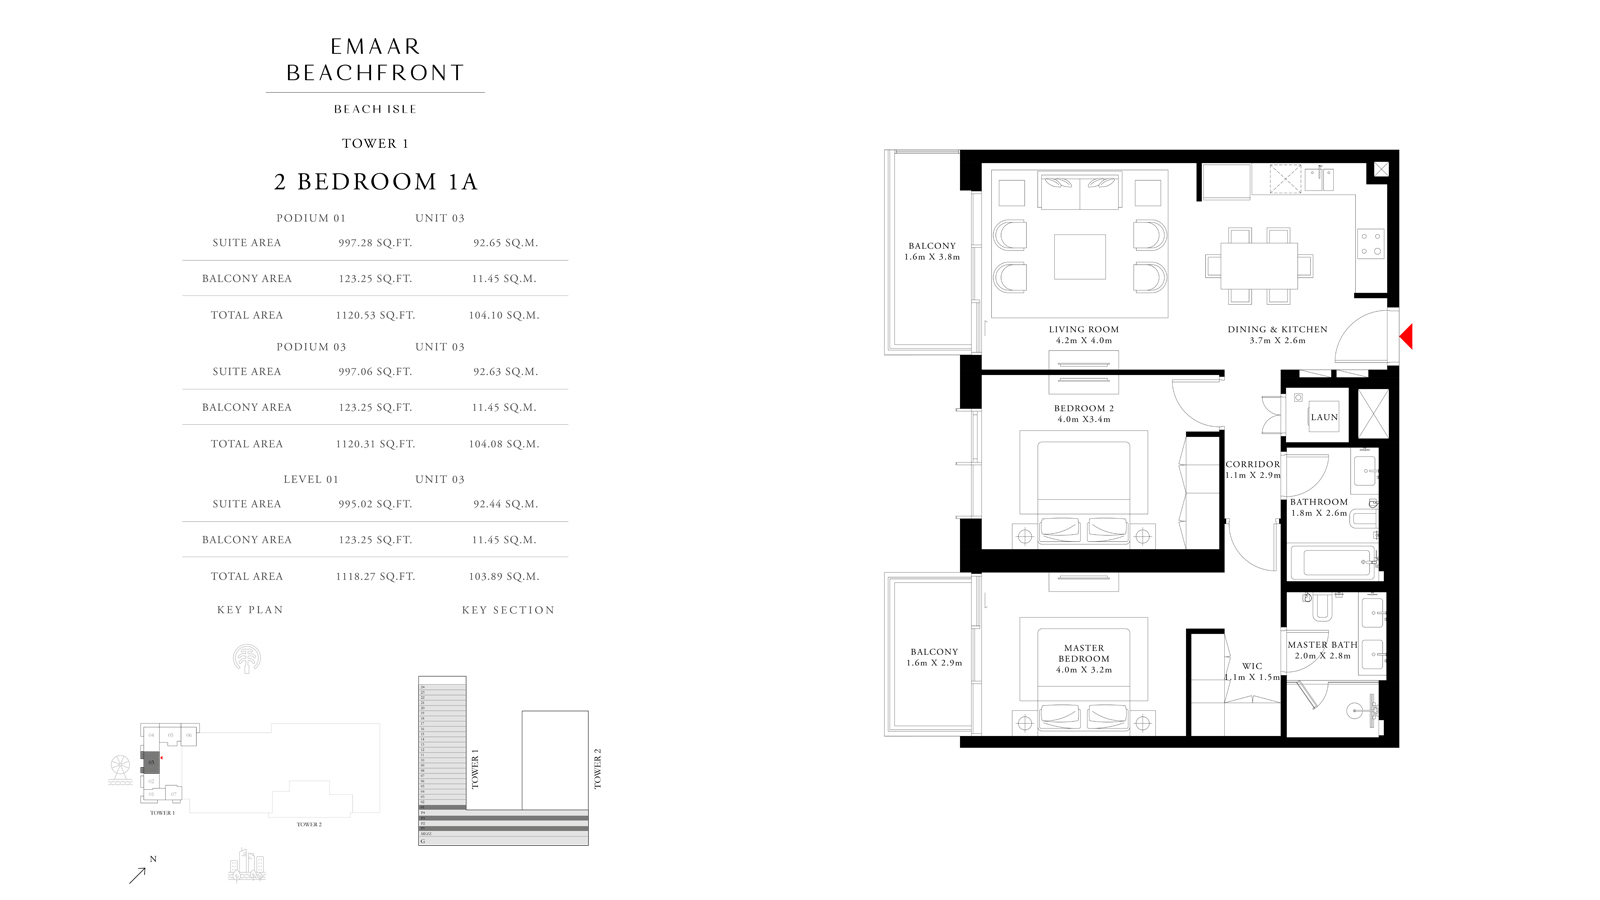 2 Bedroom 1A Tower 1, Size 1118    sq. ft.